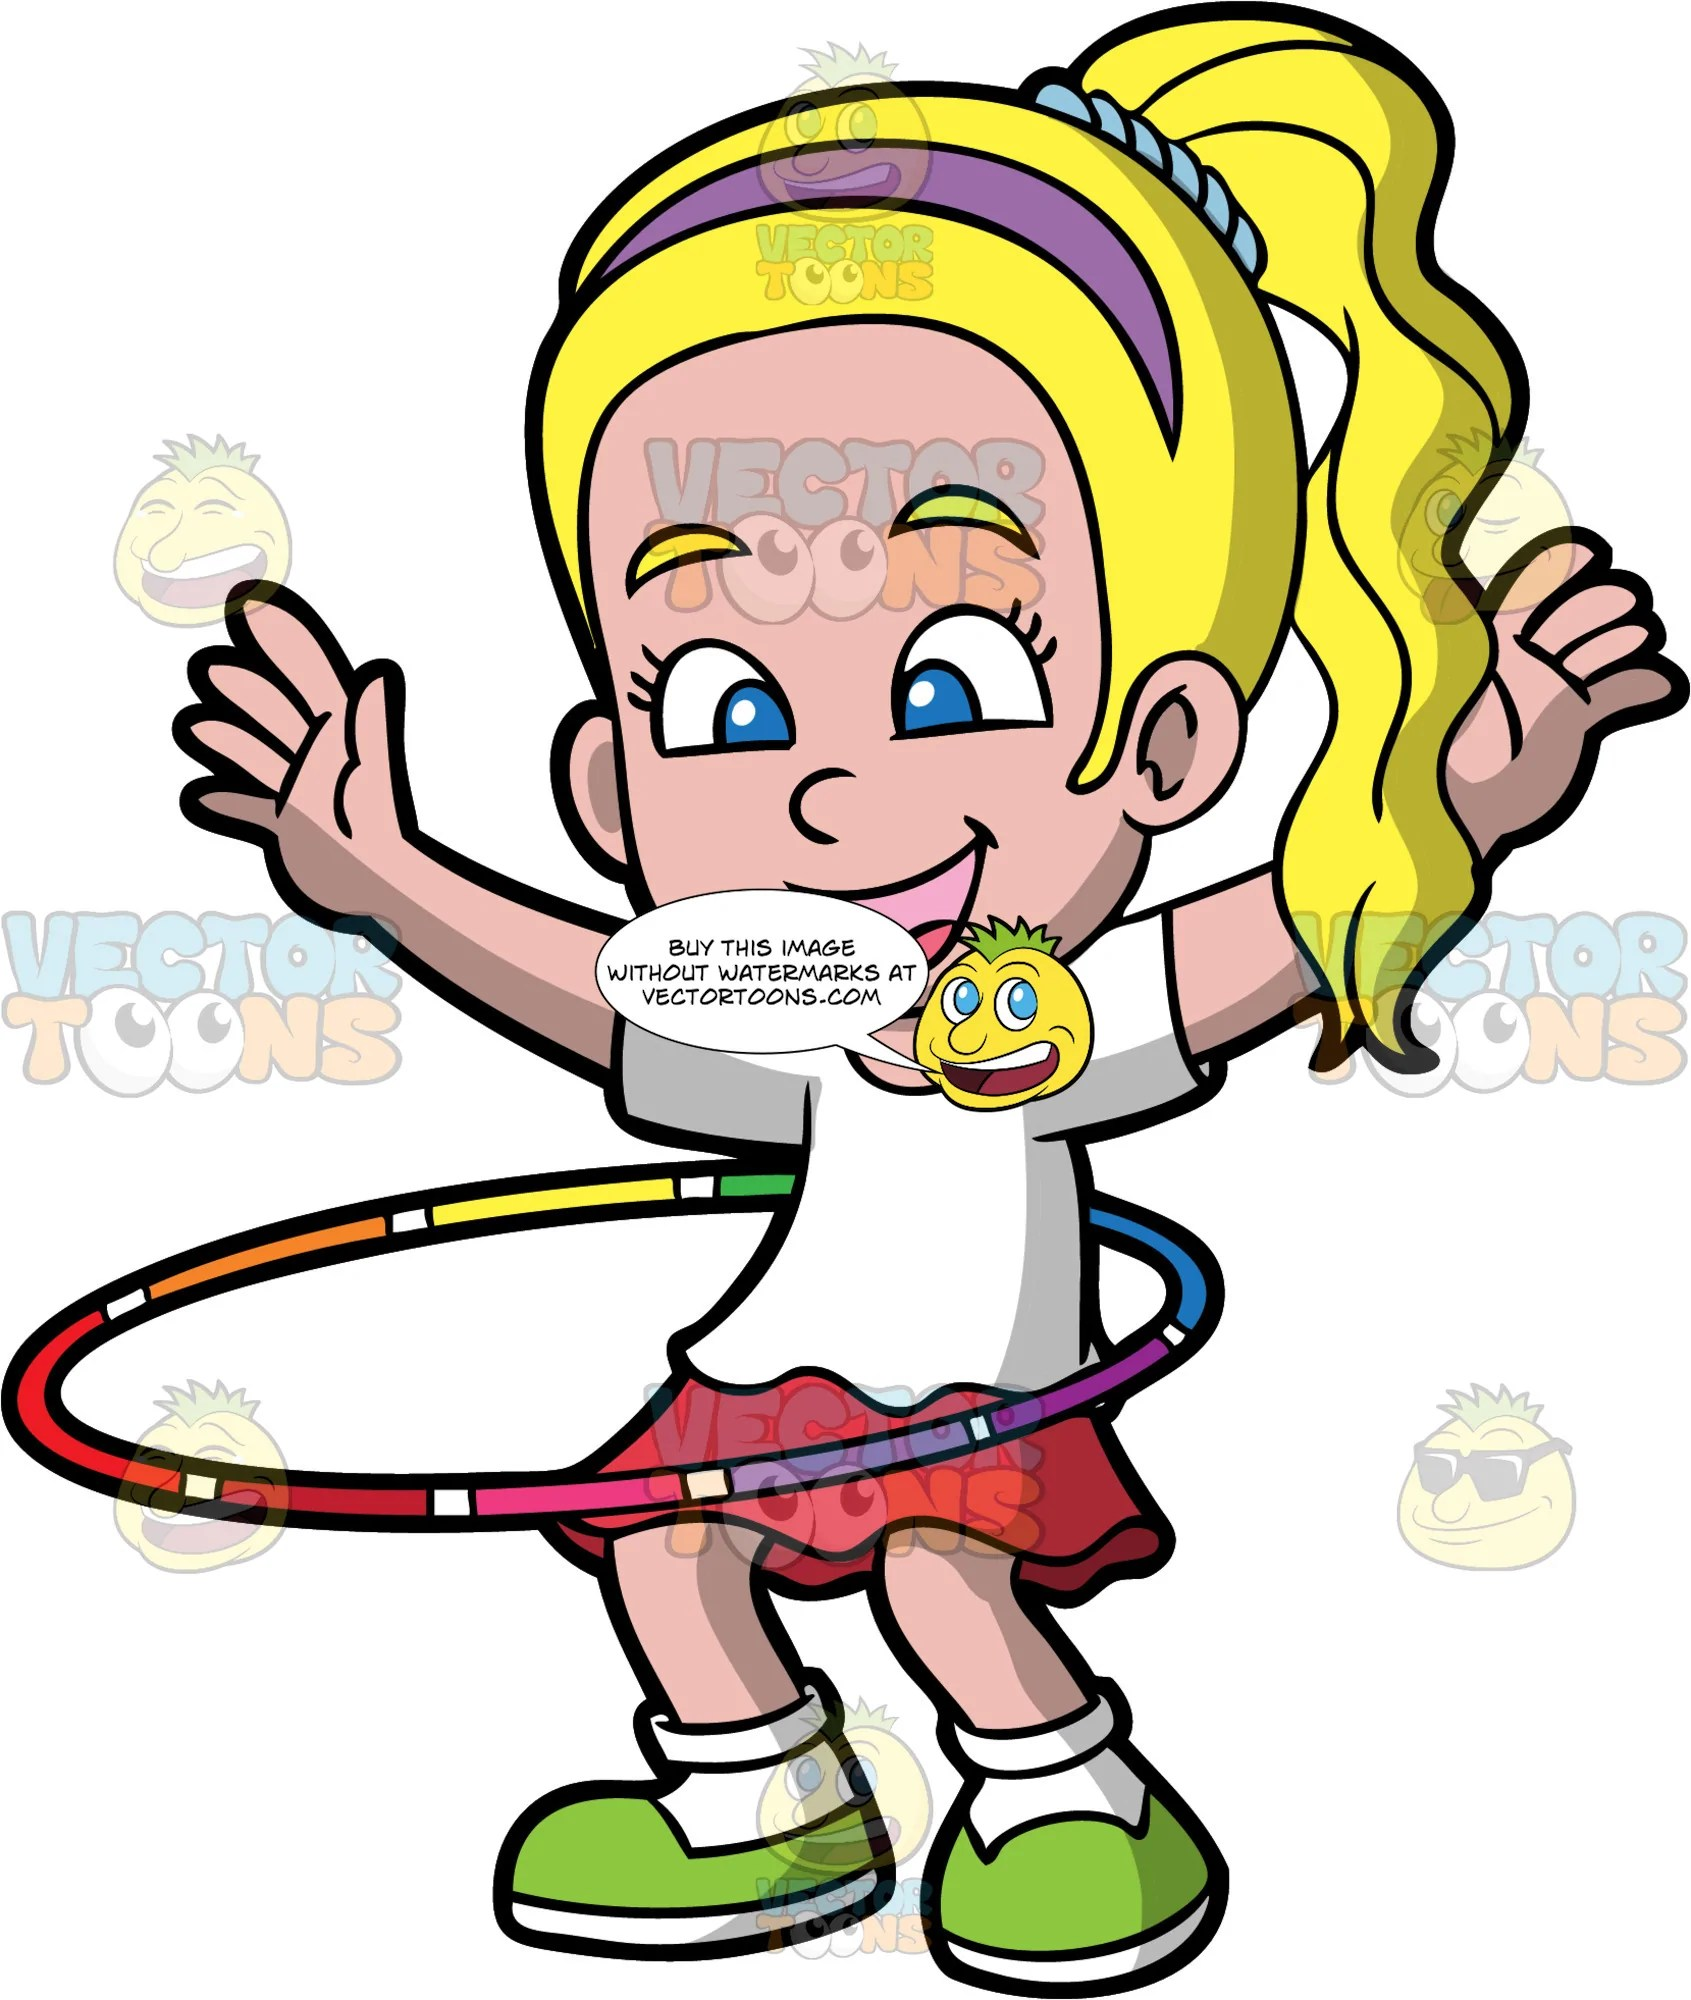 medium resolution of a pretty girl twirling a hula hoop a girl with blonde hair in a ponytail